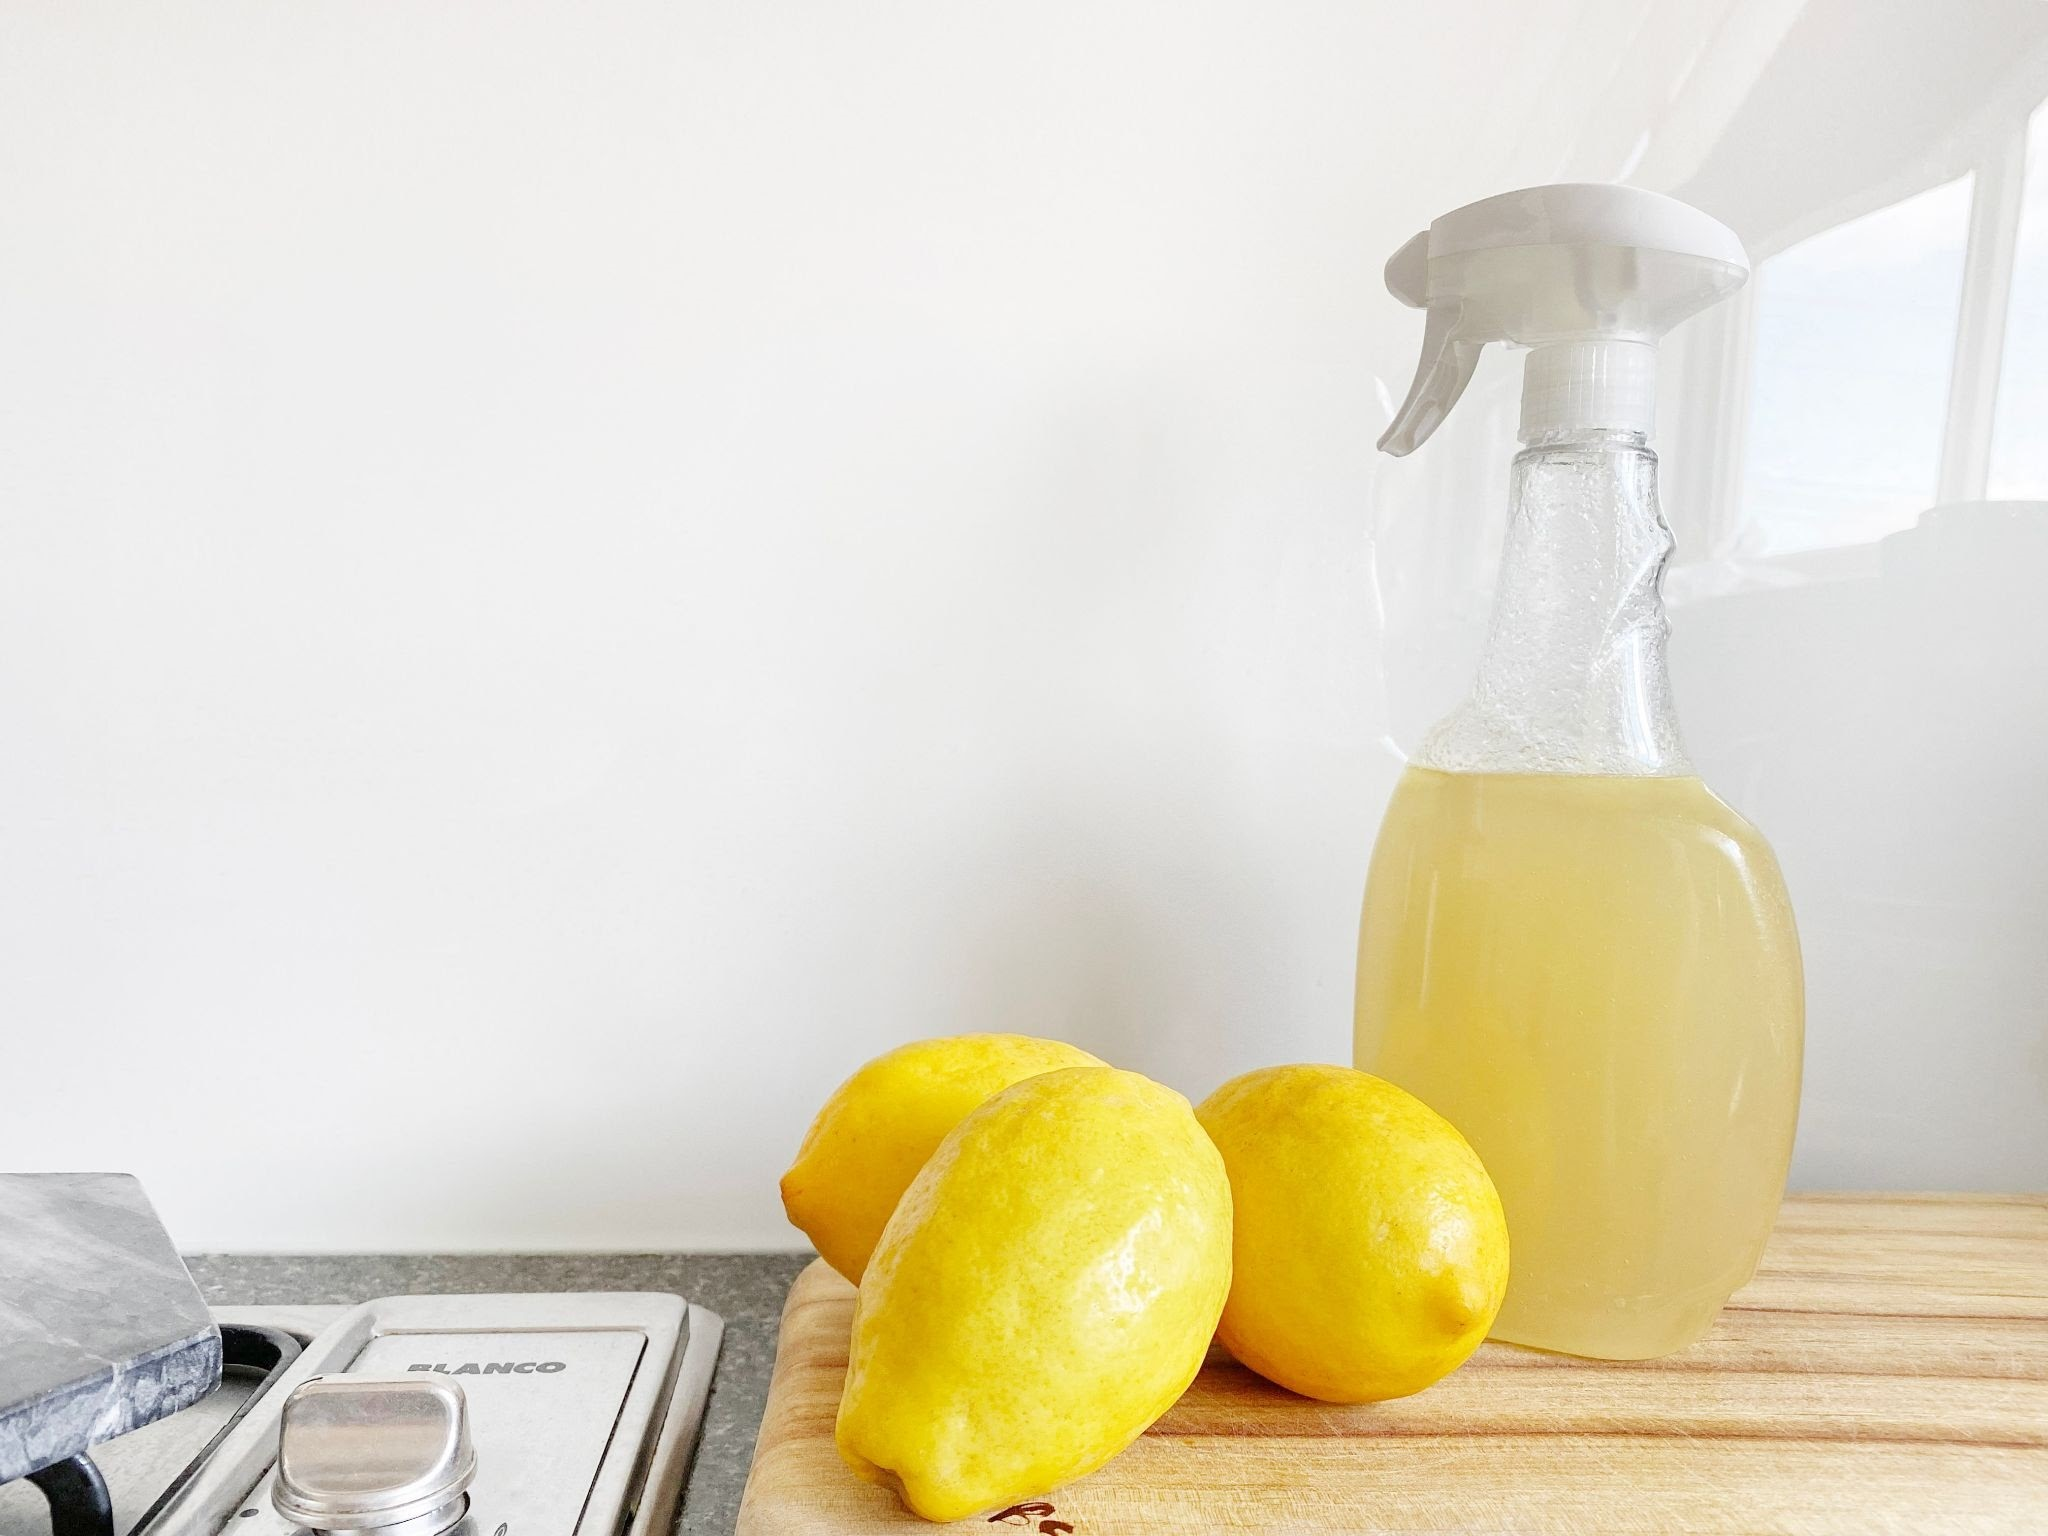 Natural Deodorizing Solutions for a Smelly Room